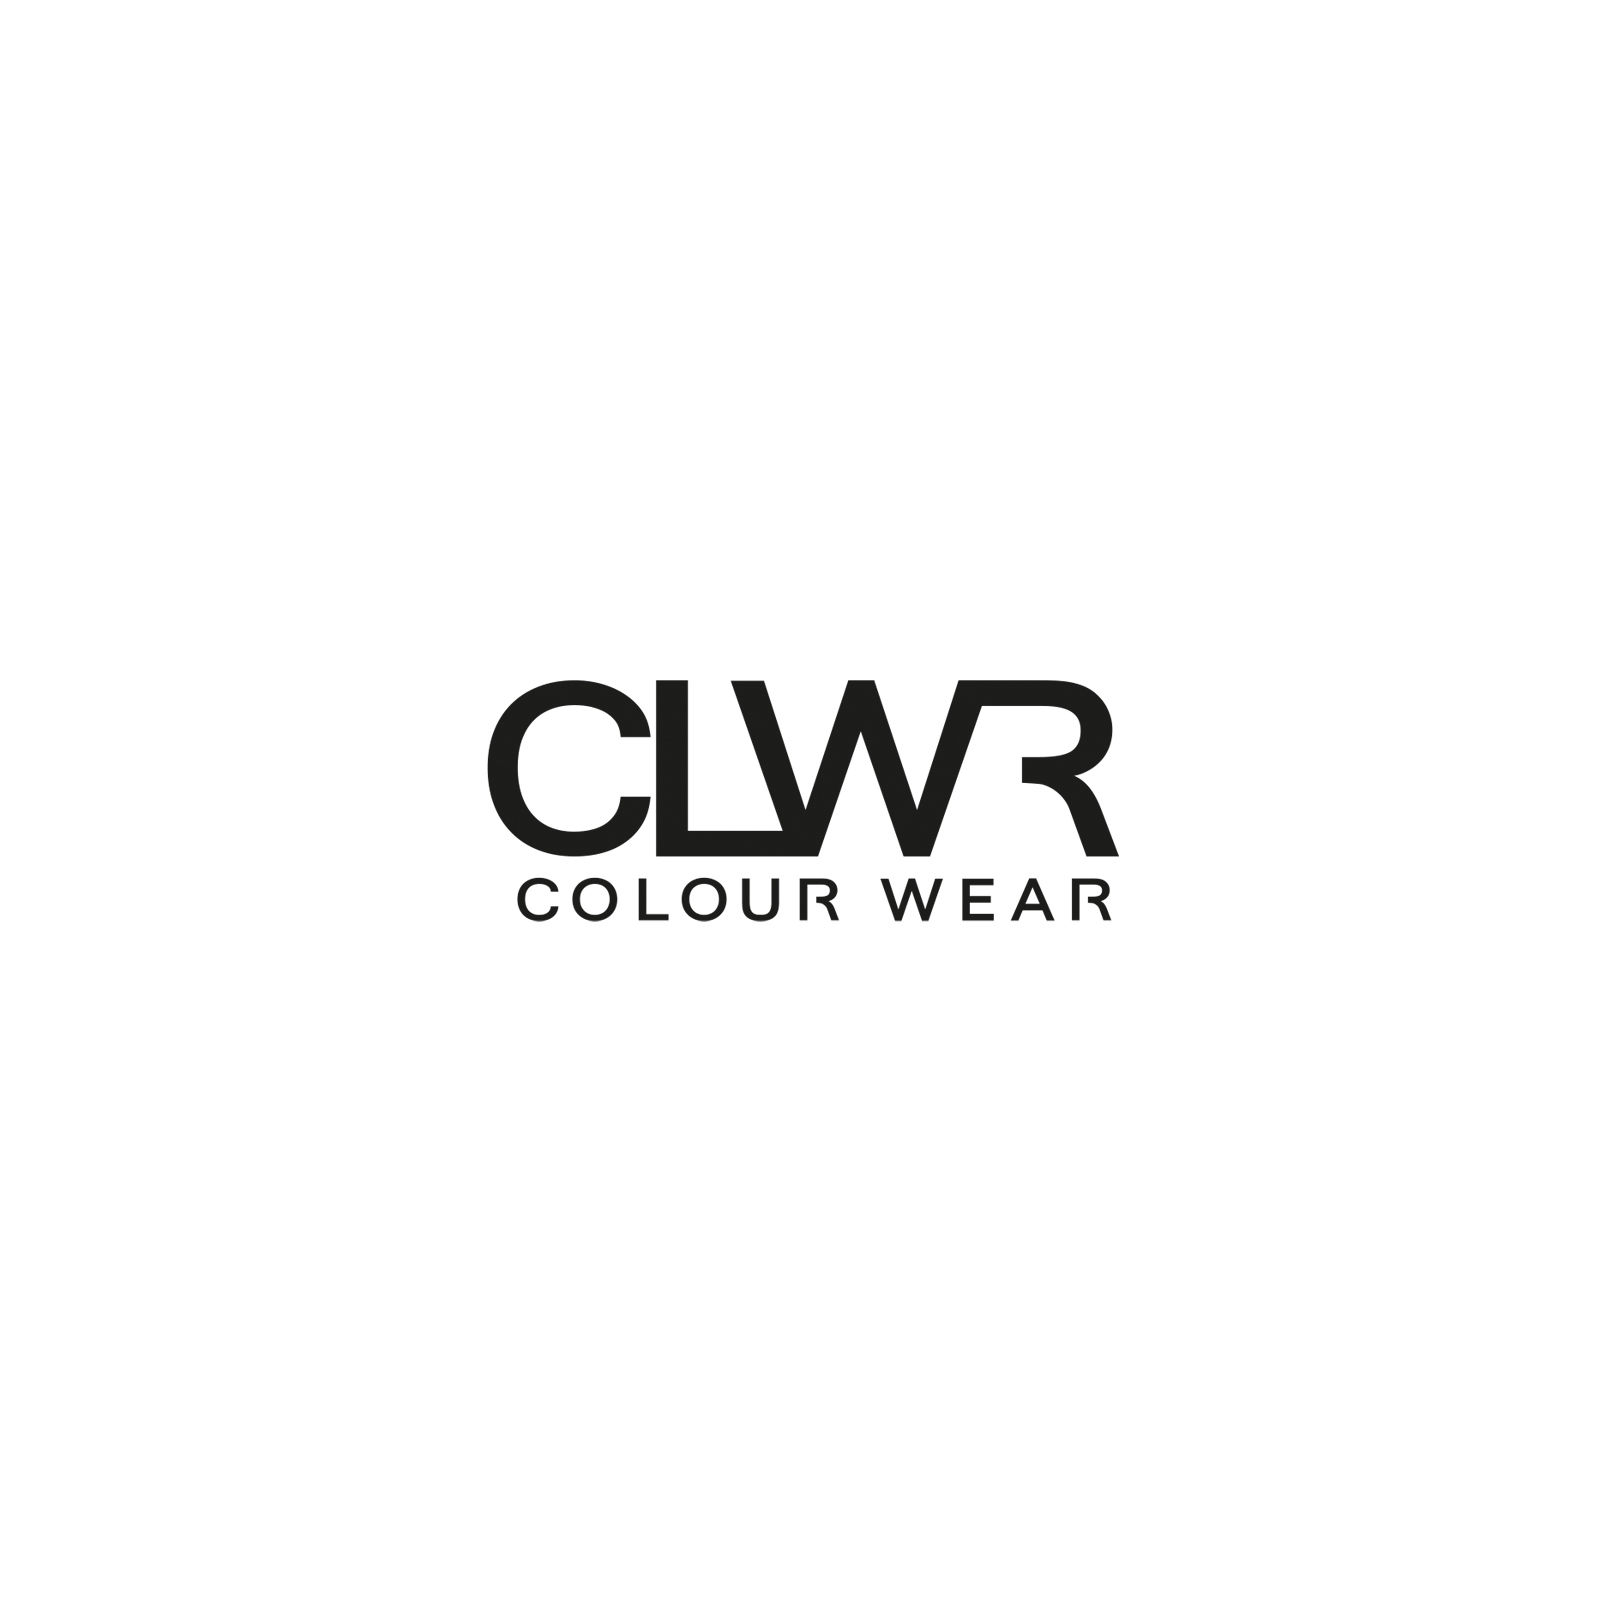 CLWR Colour Wear